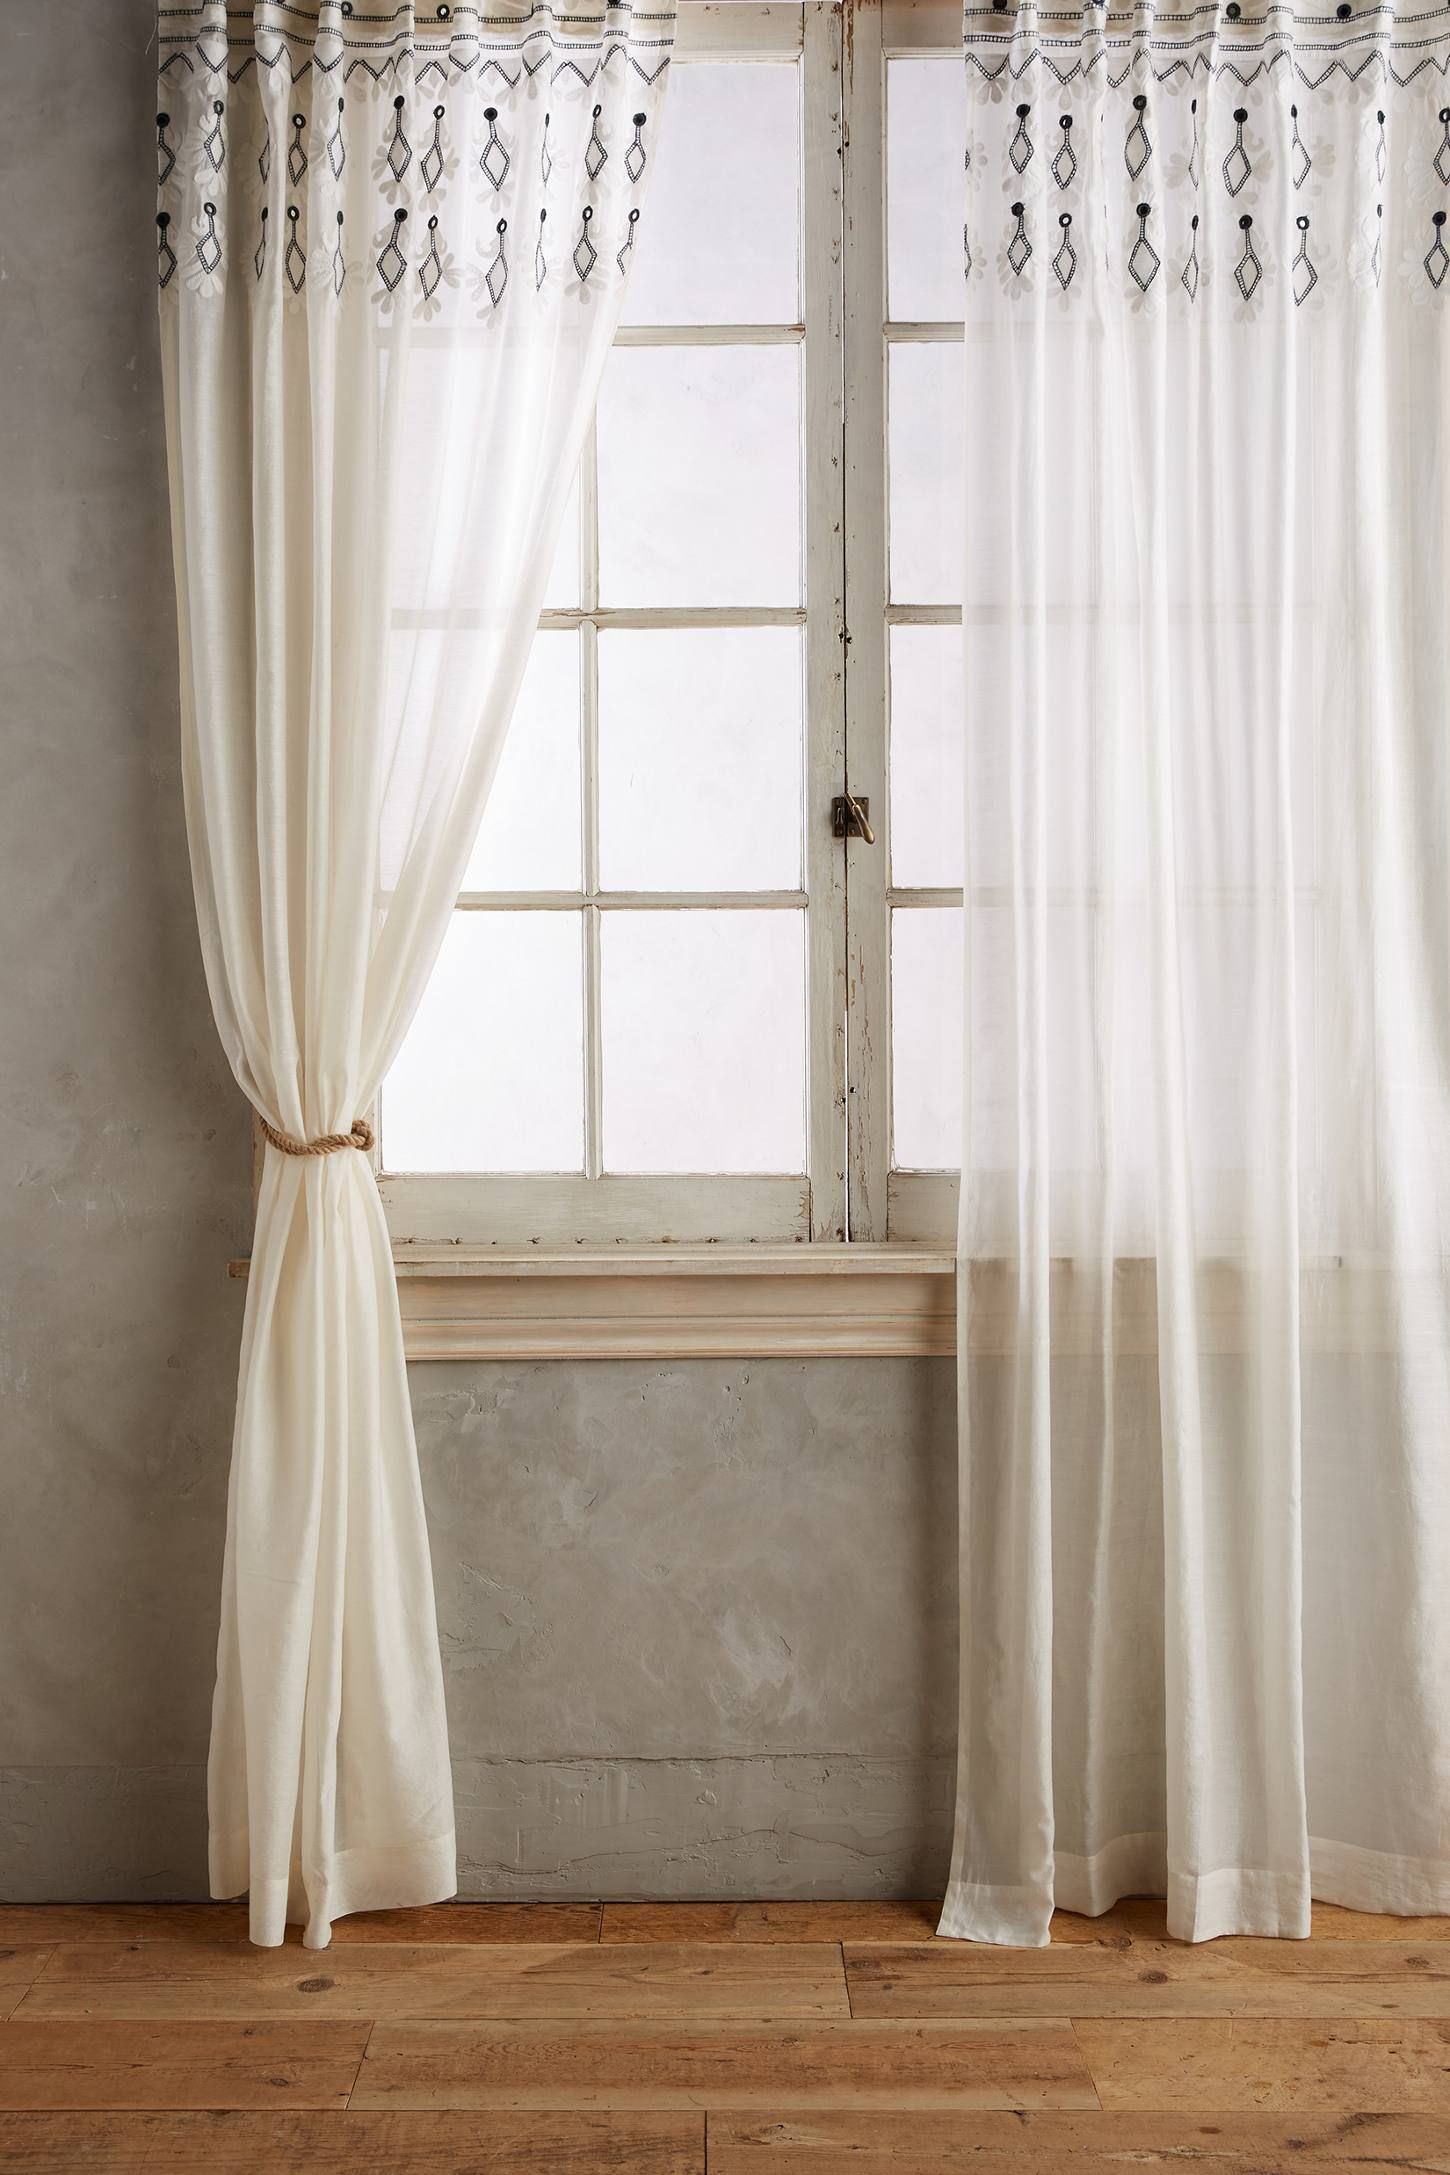 Smithery Curtain Rod Curtains White Curtains Bedroom Country